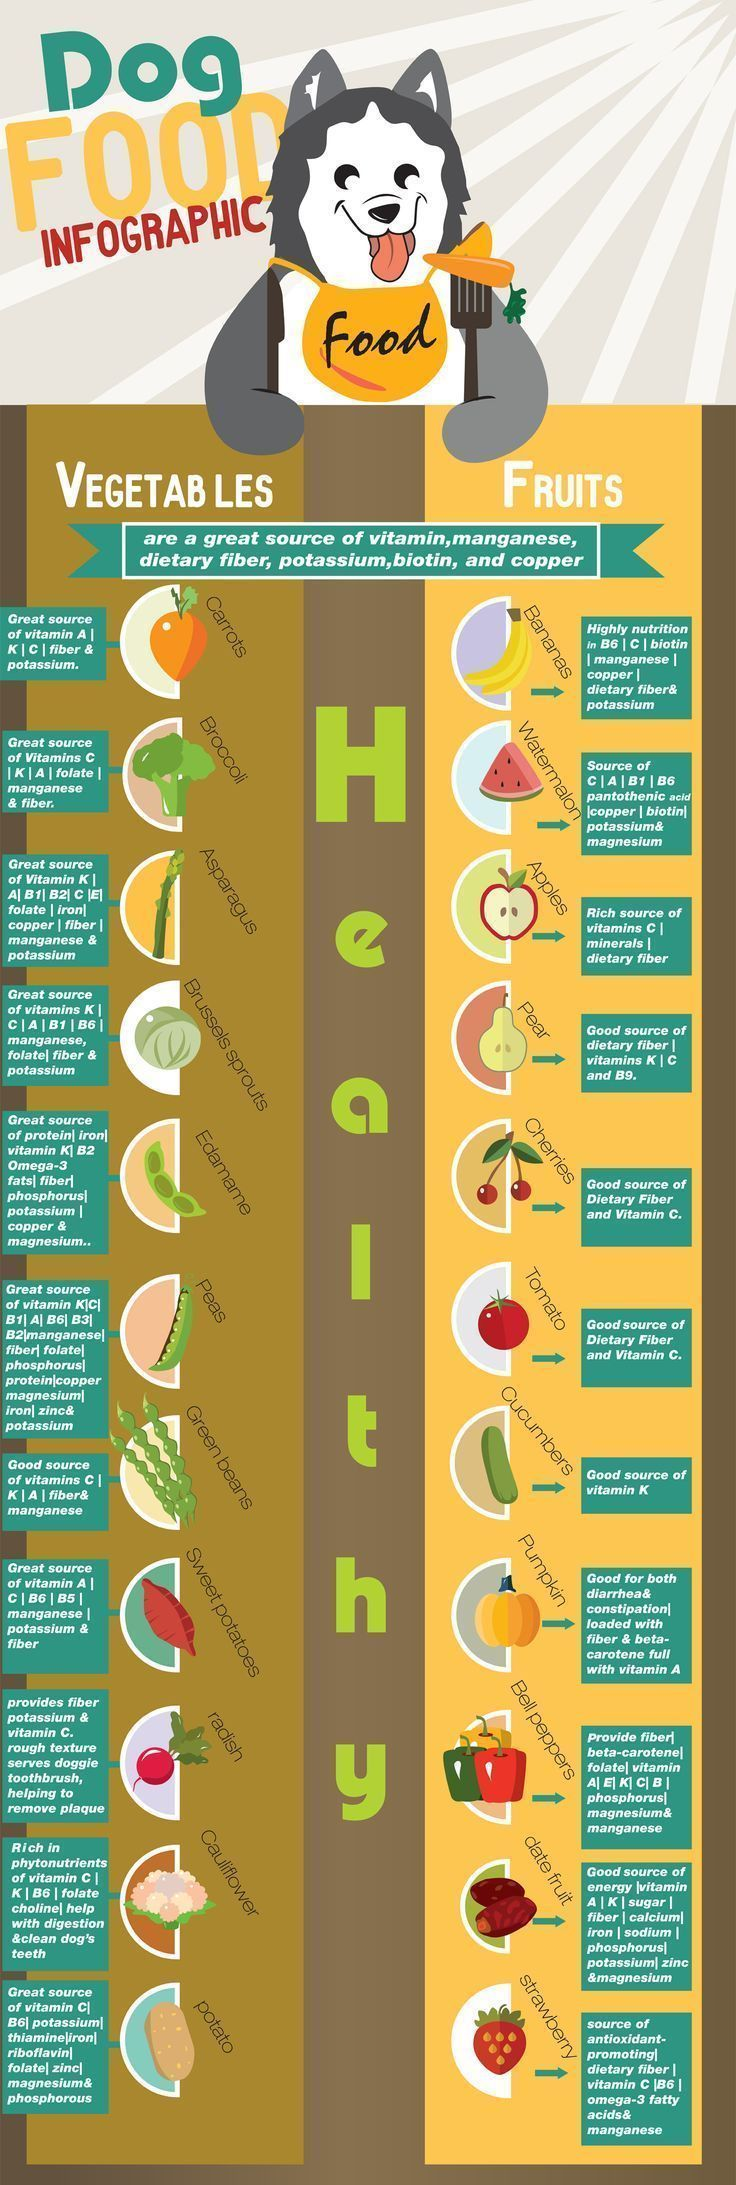 Dog food Infographic, Most people don't know but dogs are